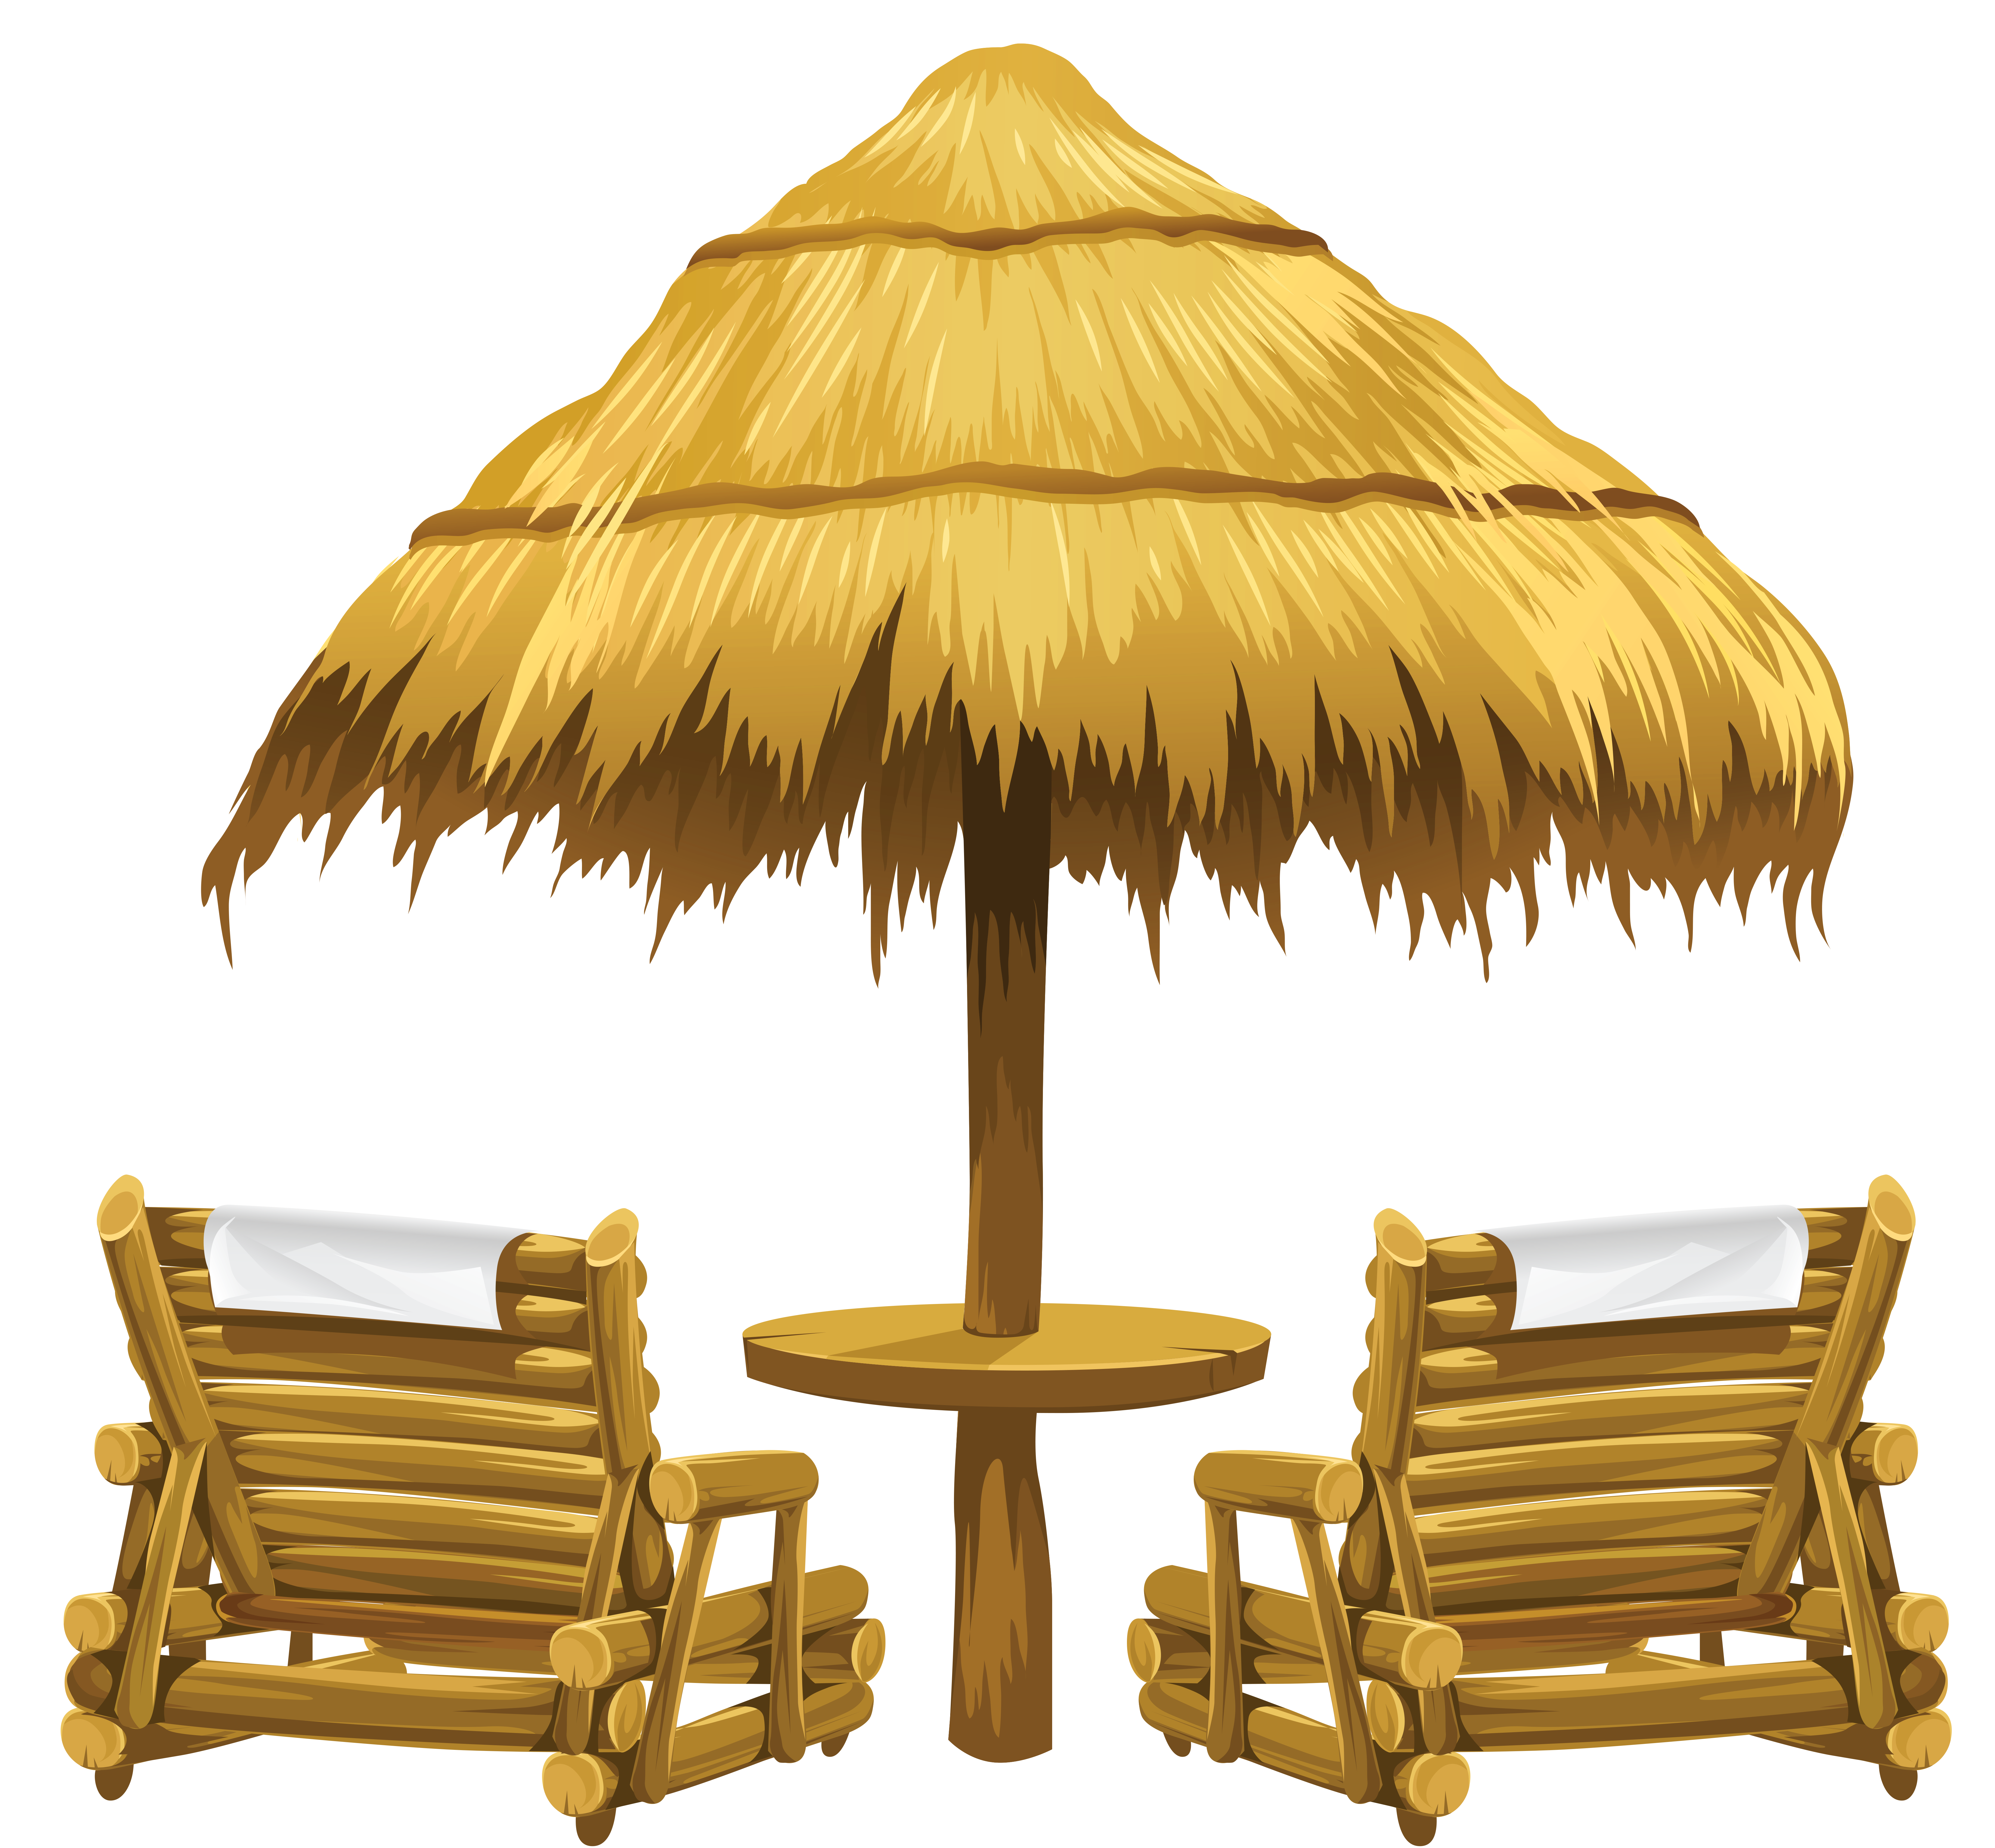 Transparent Tiki Beach Umbrella And Chairs Png Clipart Beach Clipart Beach Lounge Chair Clip Art